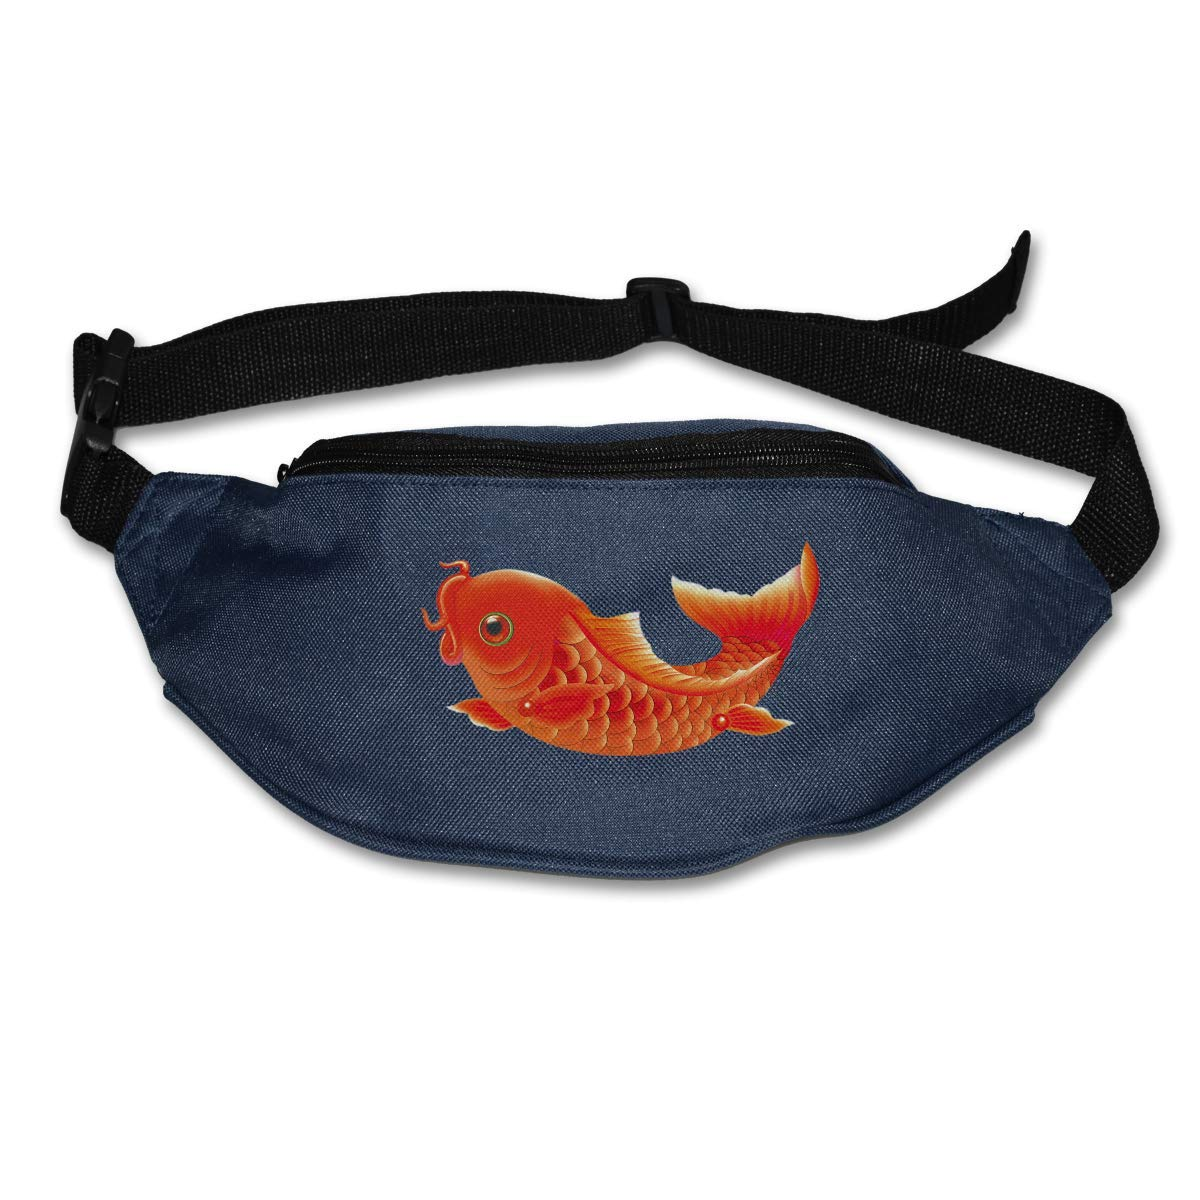 Waist Purse Red Fish Funny Logo Unisex Outdoor Sports Pouch Fitness Runners Waist Bags